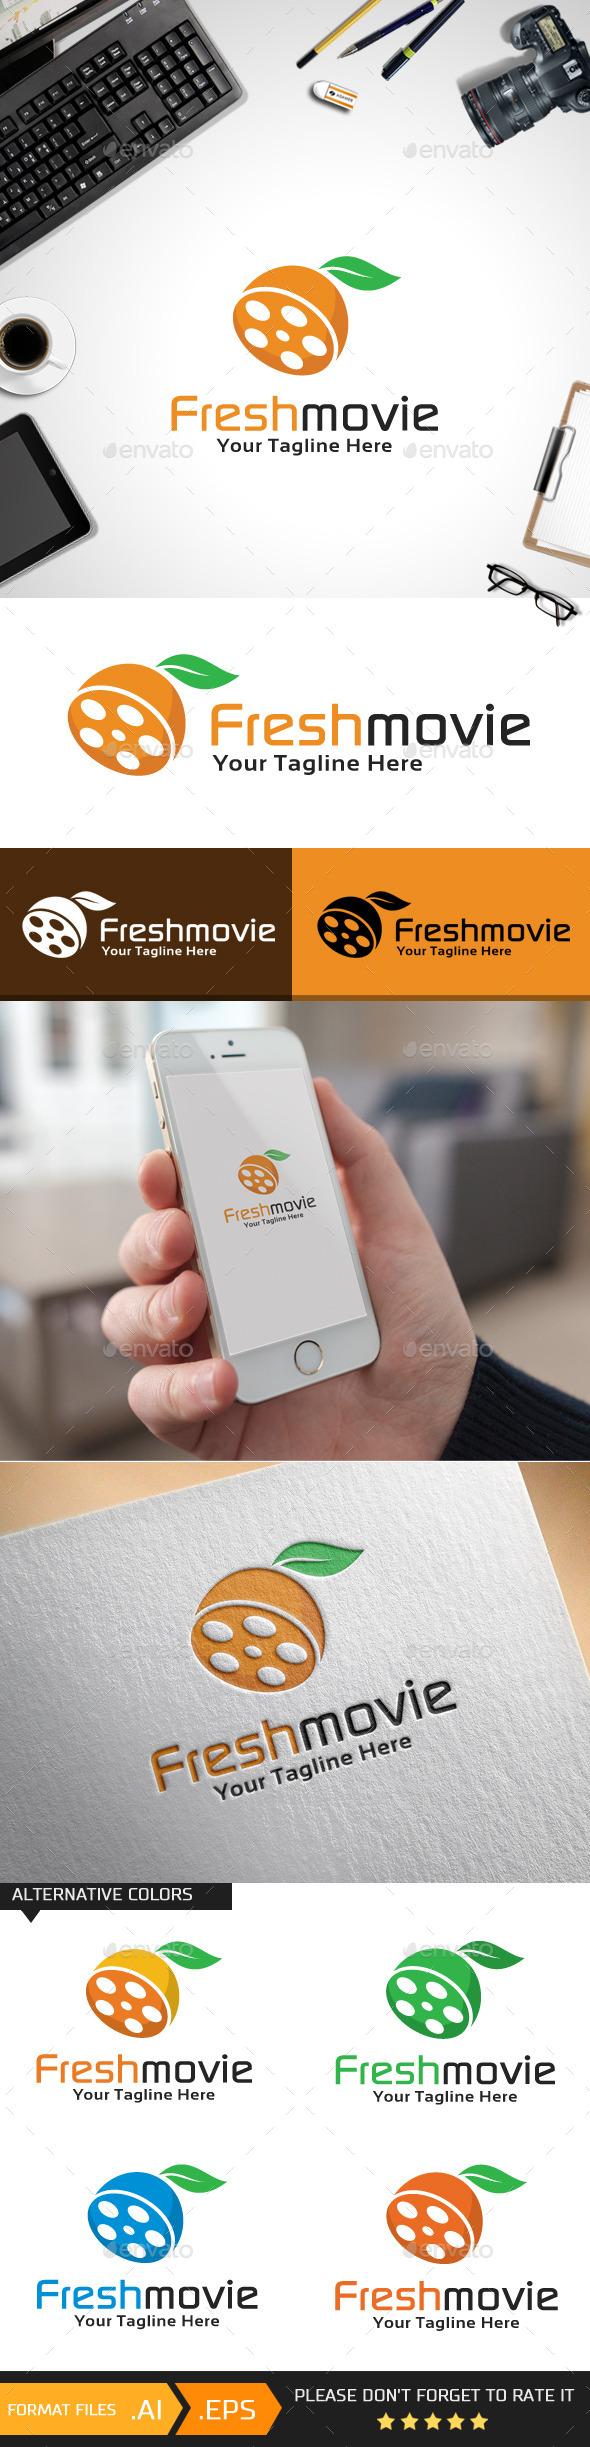 Freshmovie Logo Template